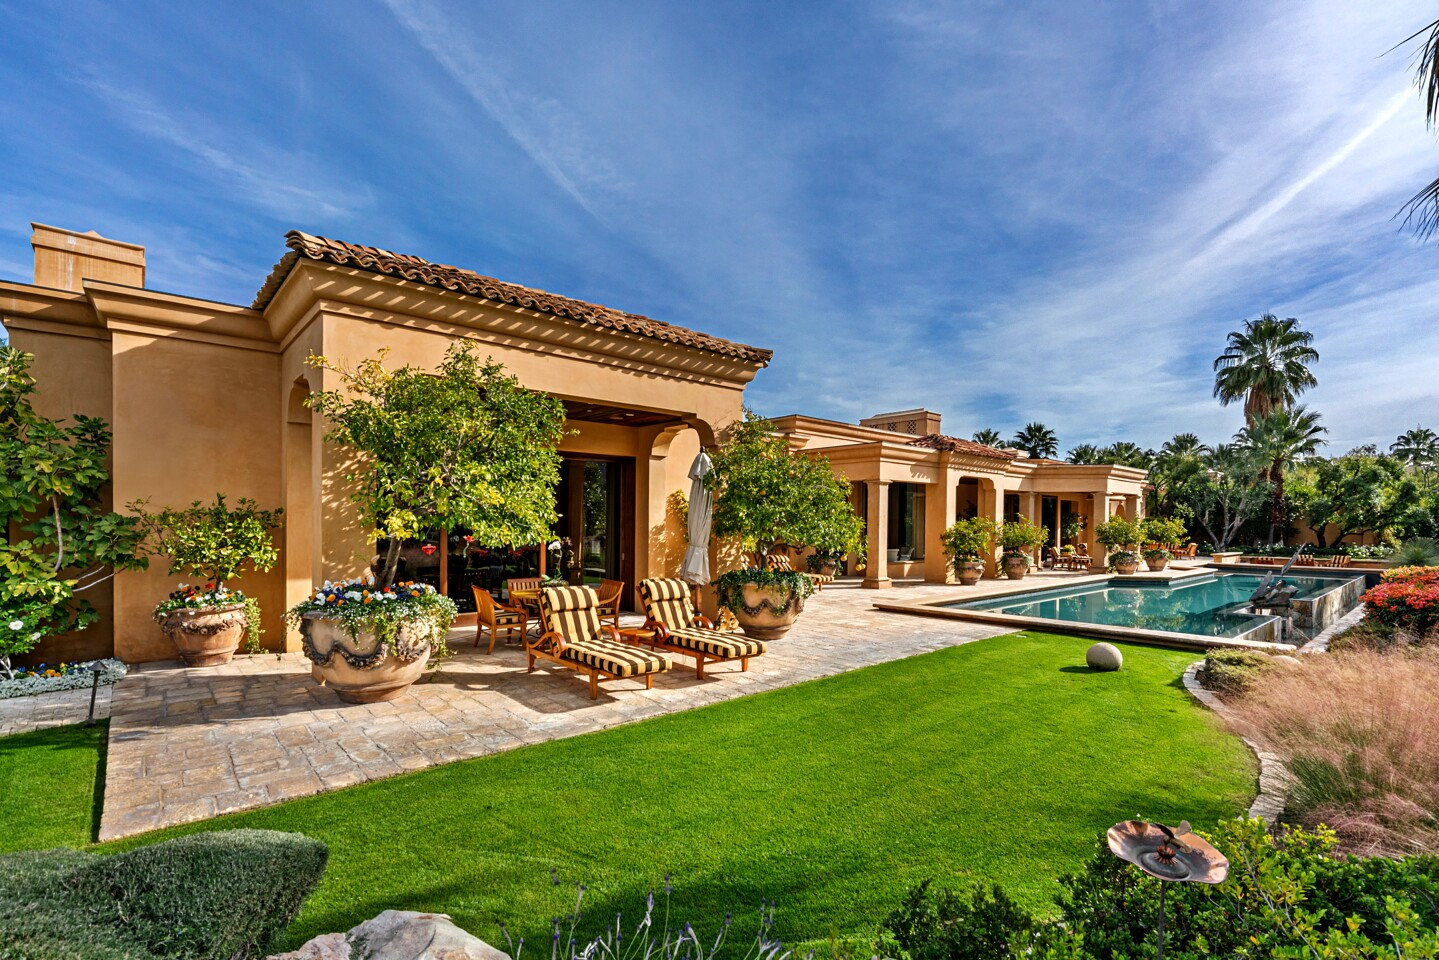 Home of the Week | A Mediterranean oasis dazzles in Palm Desert